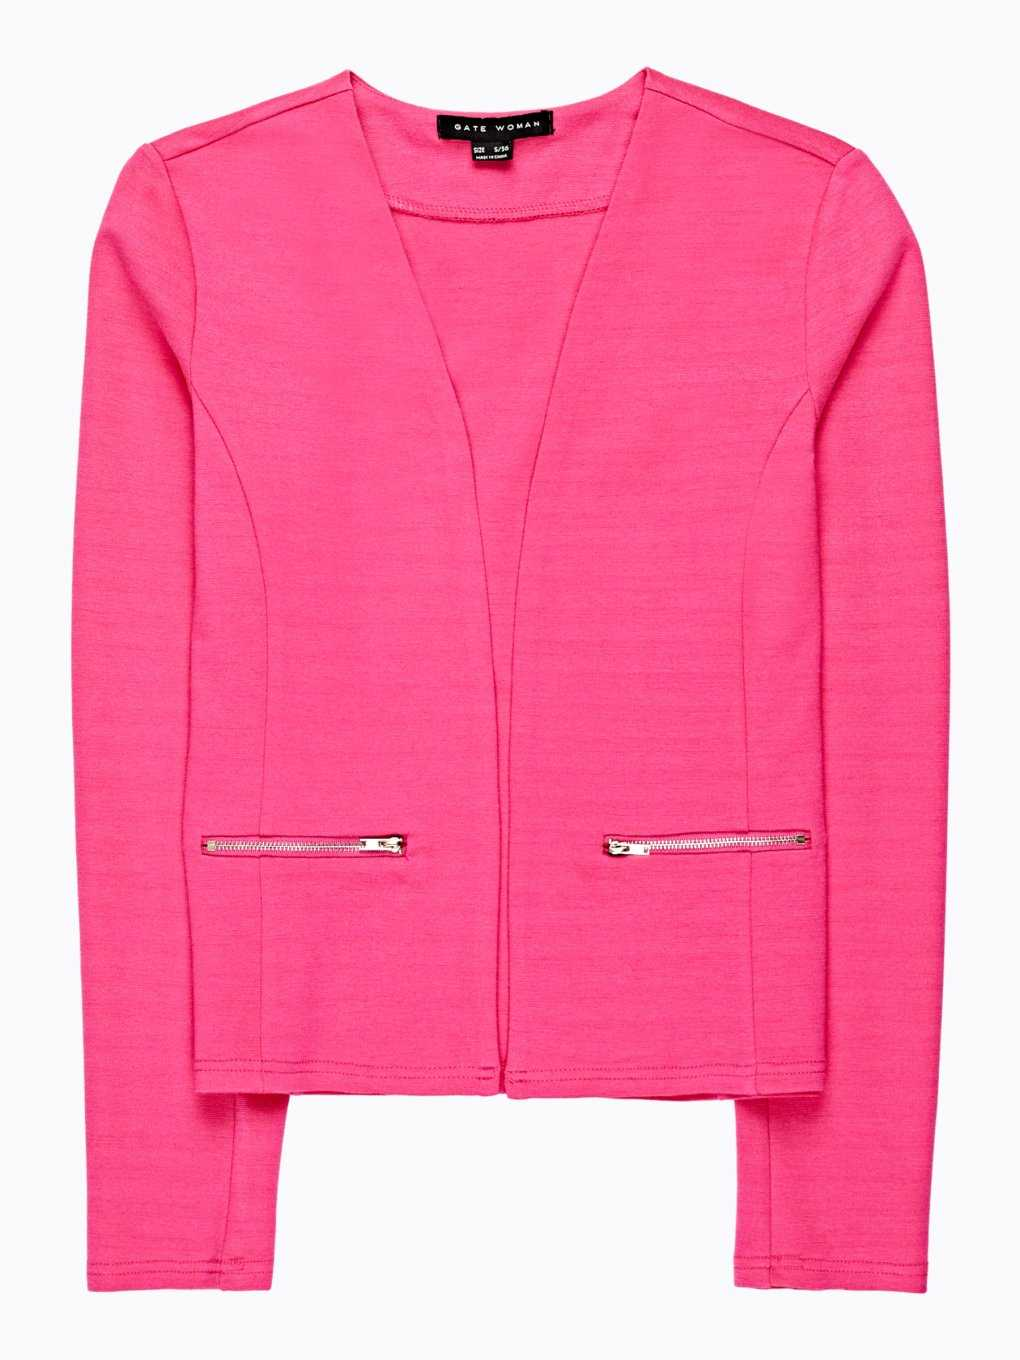 Blazer with zippers